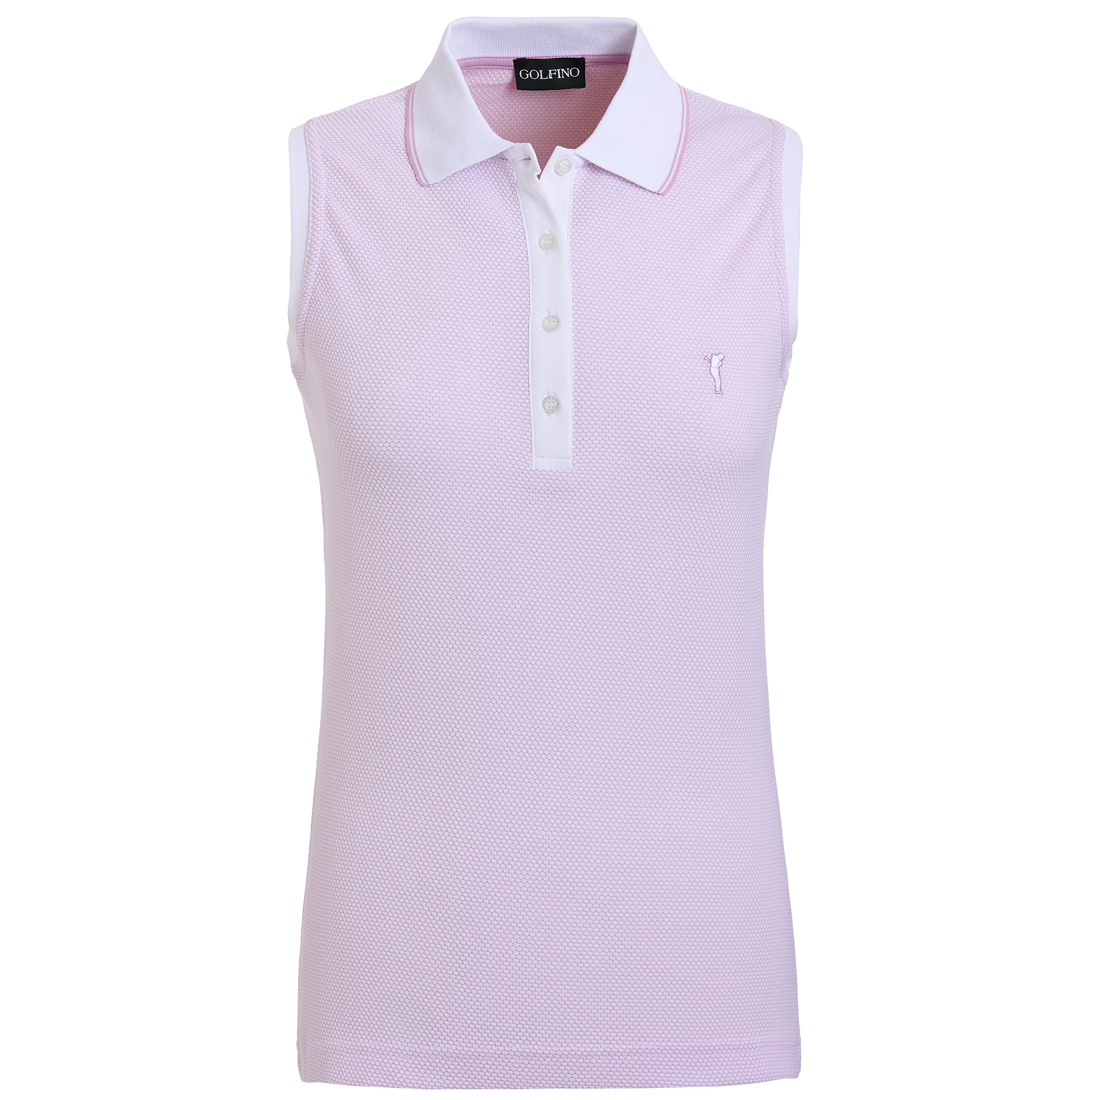 Ärmelloses Damen Funktions-Golfpoloshirt in Regular Fit mit Bubble Jacquard